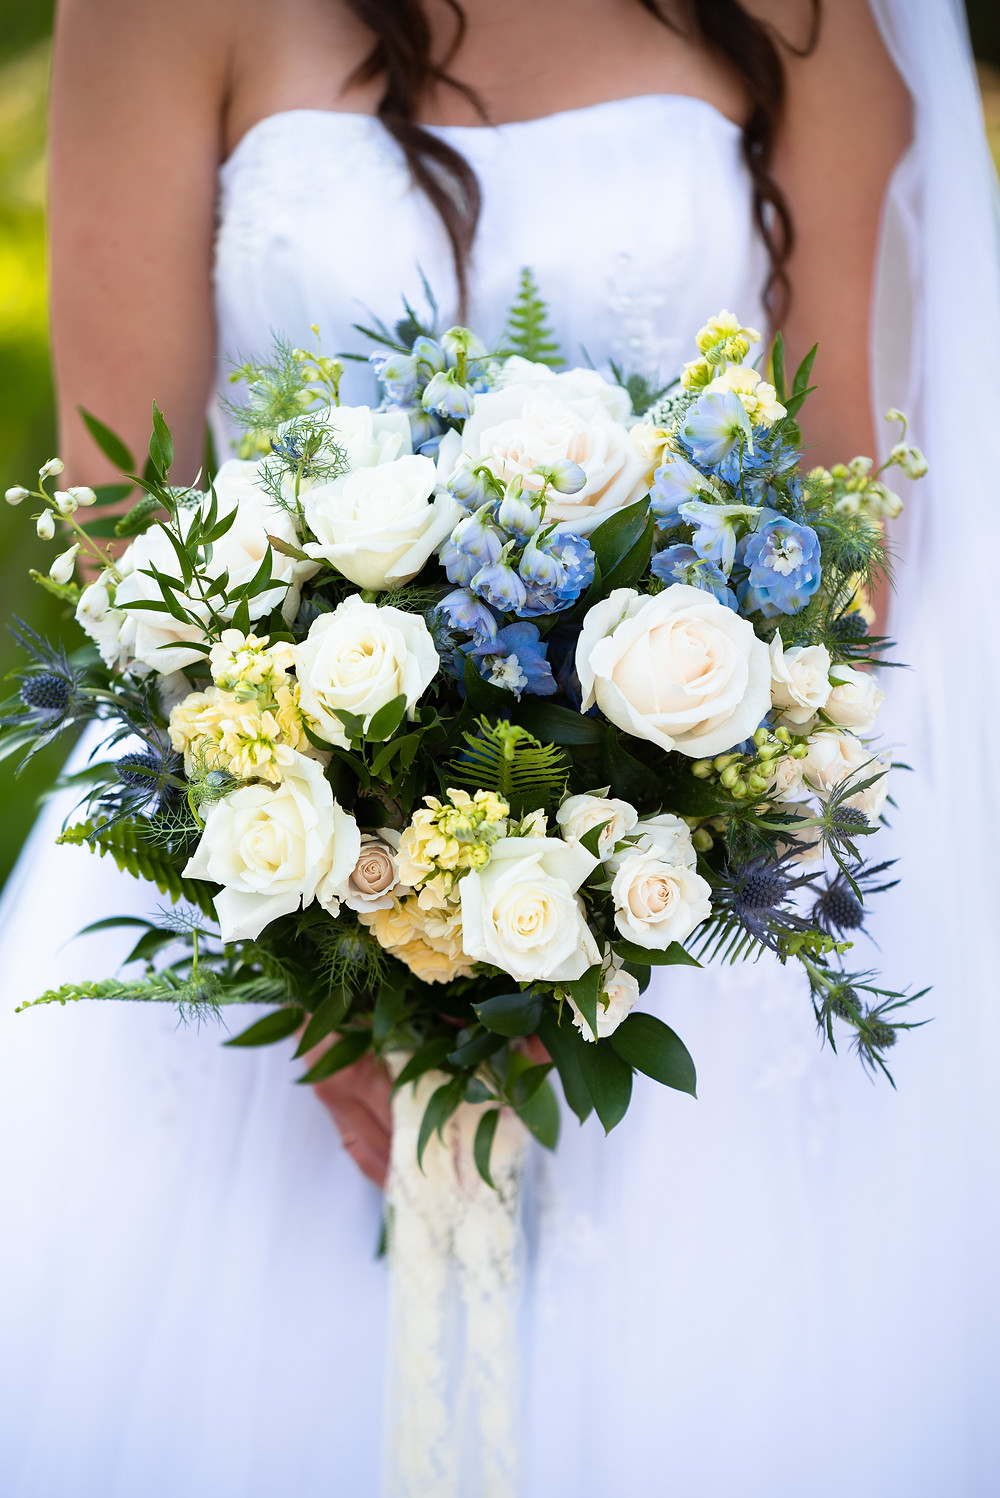 Dusty blue and white wedding bouquet from Conrad Floral in Bigfork, Montana